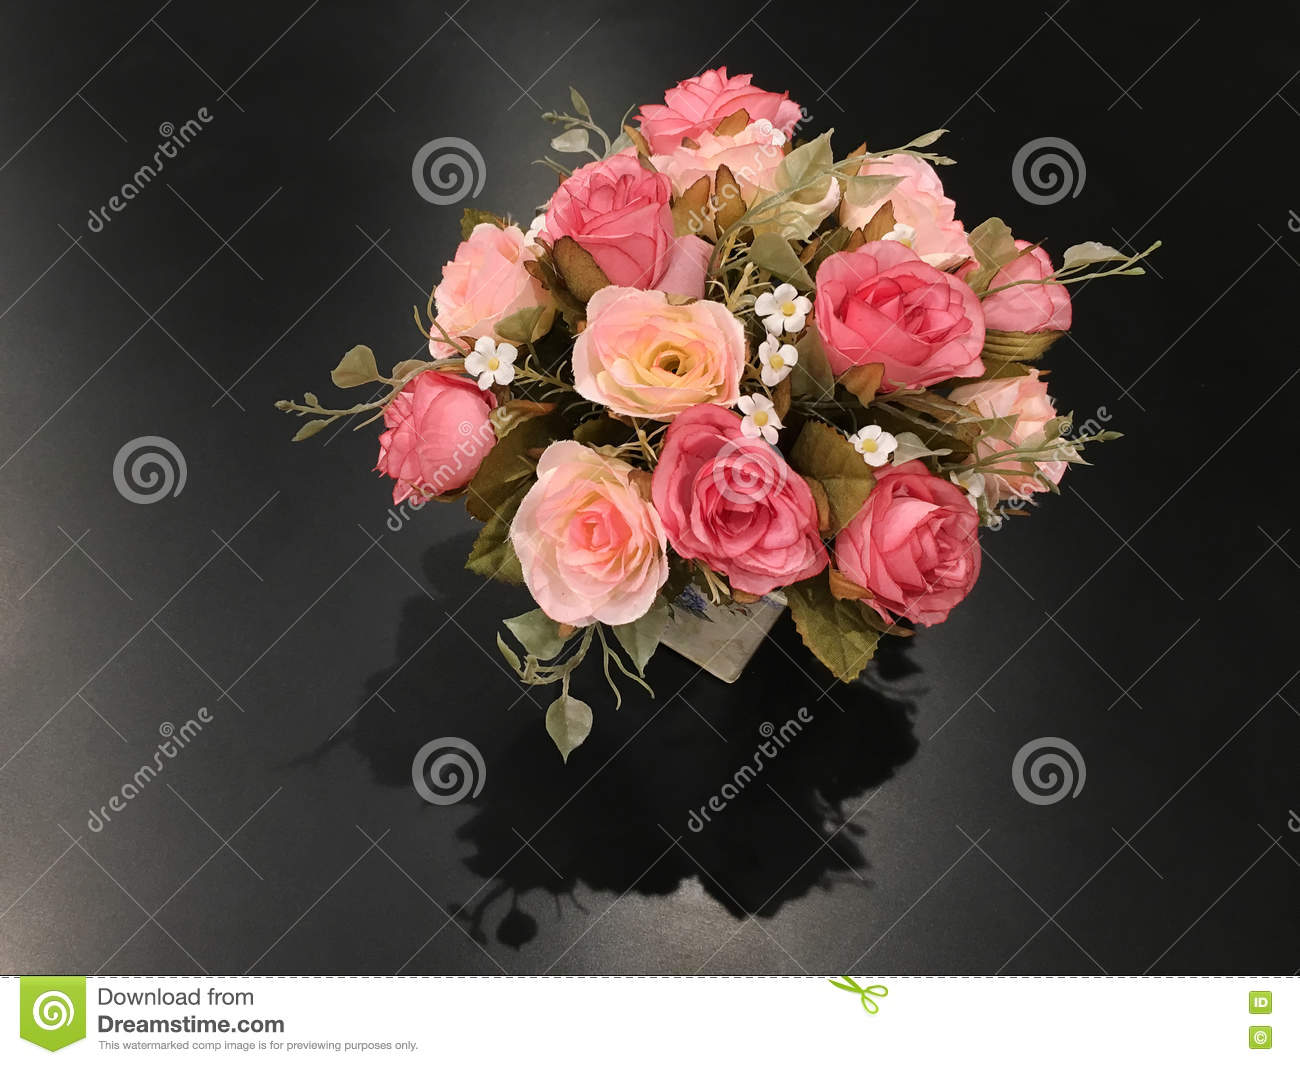 Rose Flower In Version Artificial Flowers Bouquet In Vase On Bla